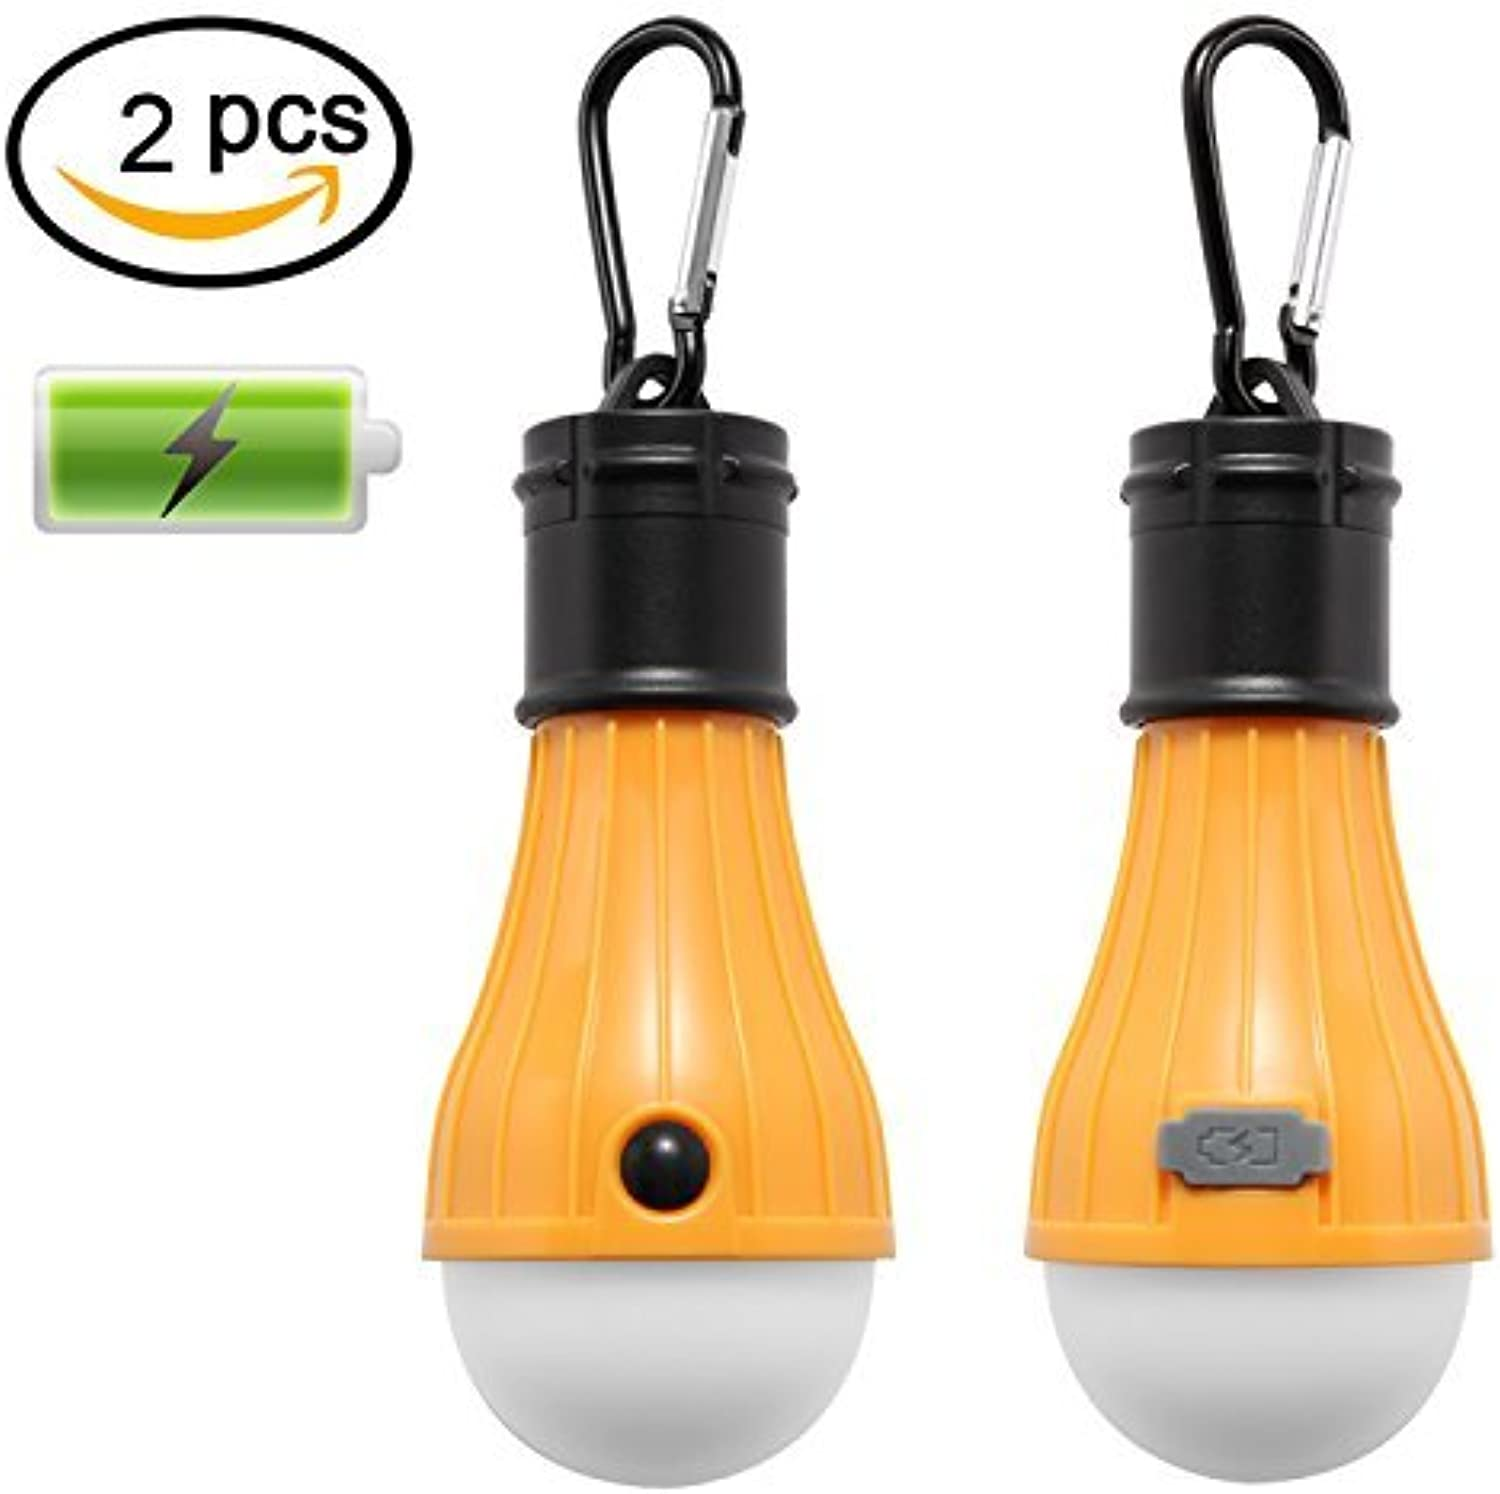 IORIGIN LED Camping Lantern with Rechargeable Battery Portable Outdoor Tent Lights Waterproof Emergency Flashlight (Yellow, 2 pcs)